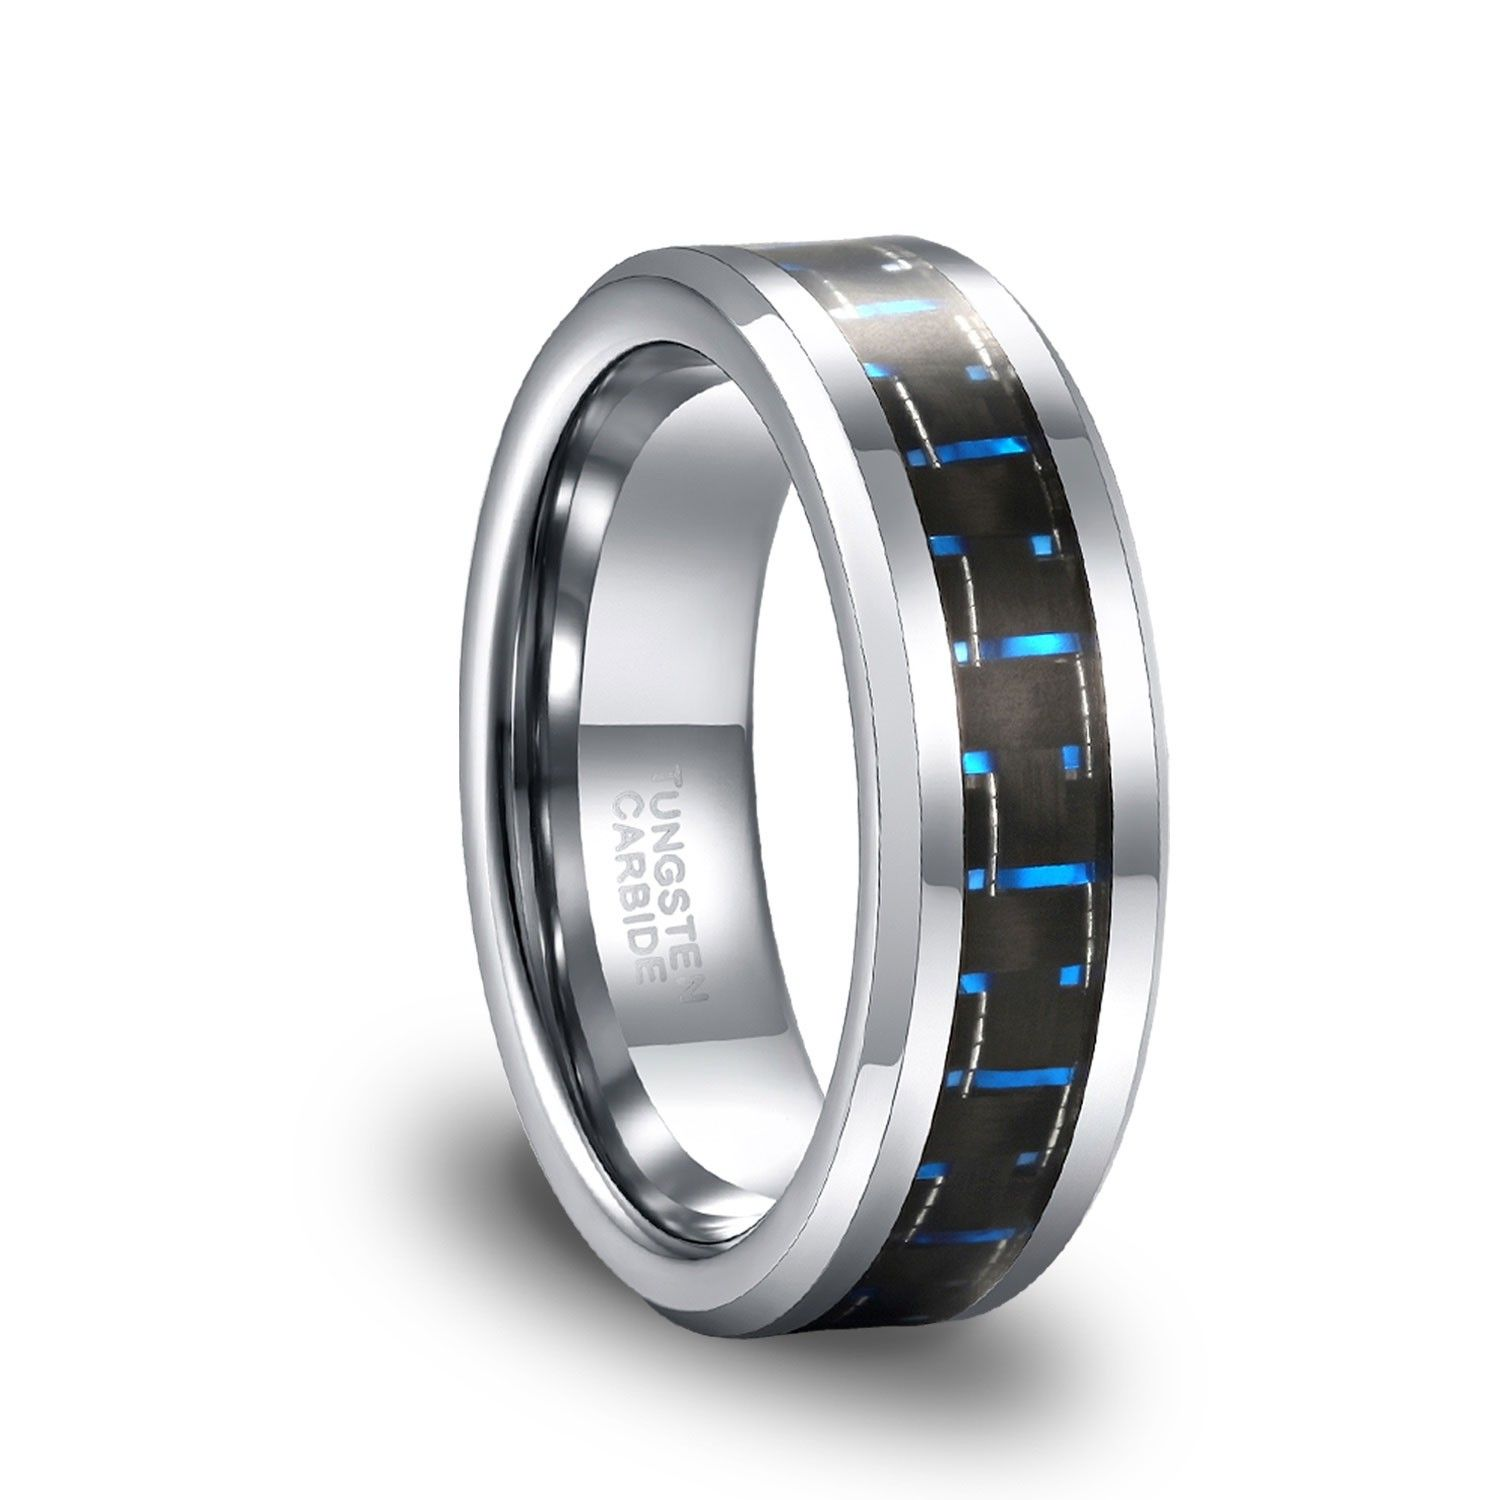 8mm Tungsten Carbide High polish With Blue Carbon fiber Inlay Wedding Band Ring For Men Or Ladies